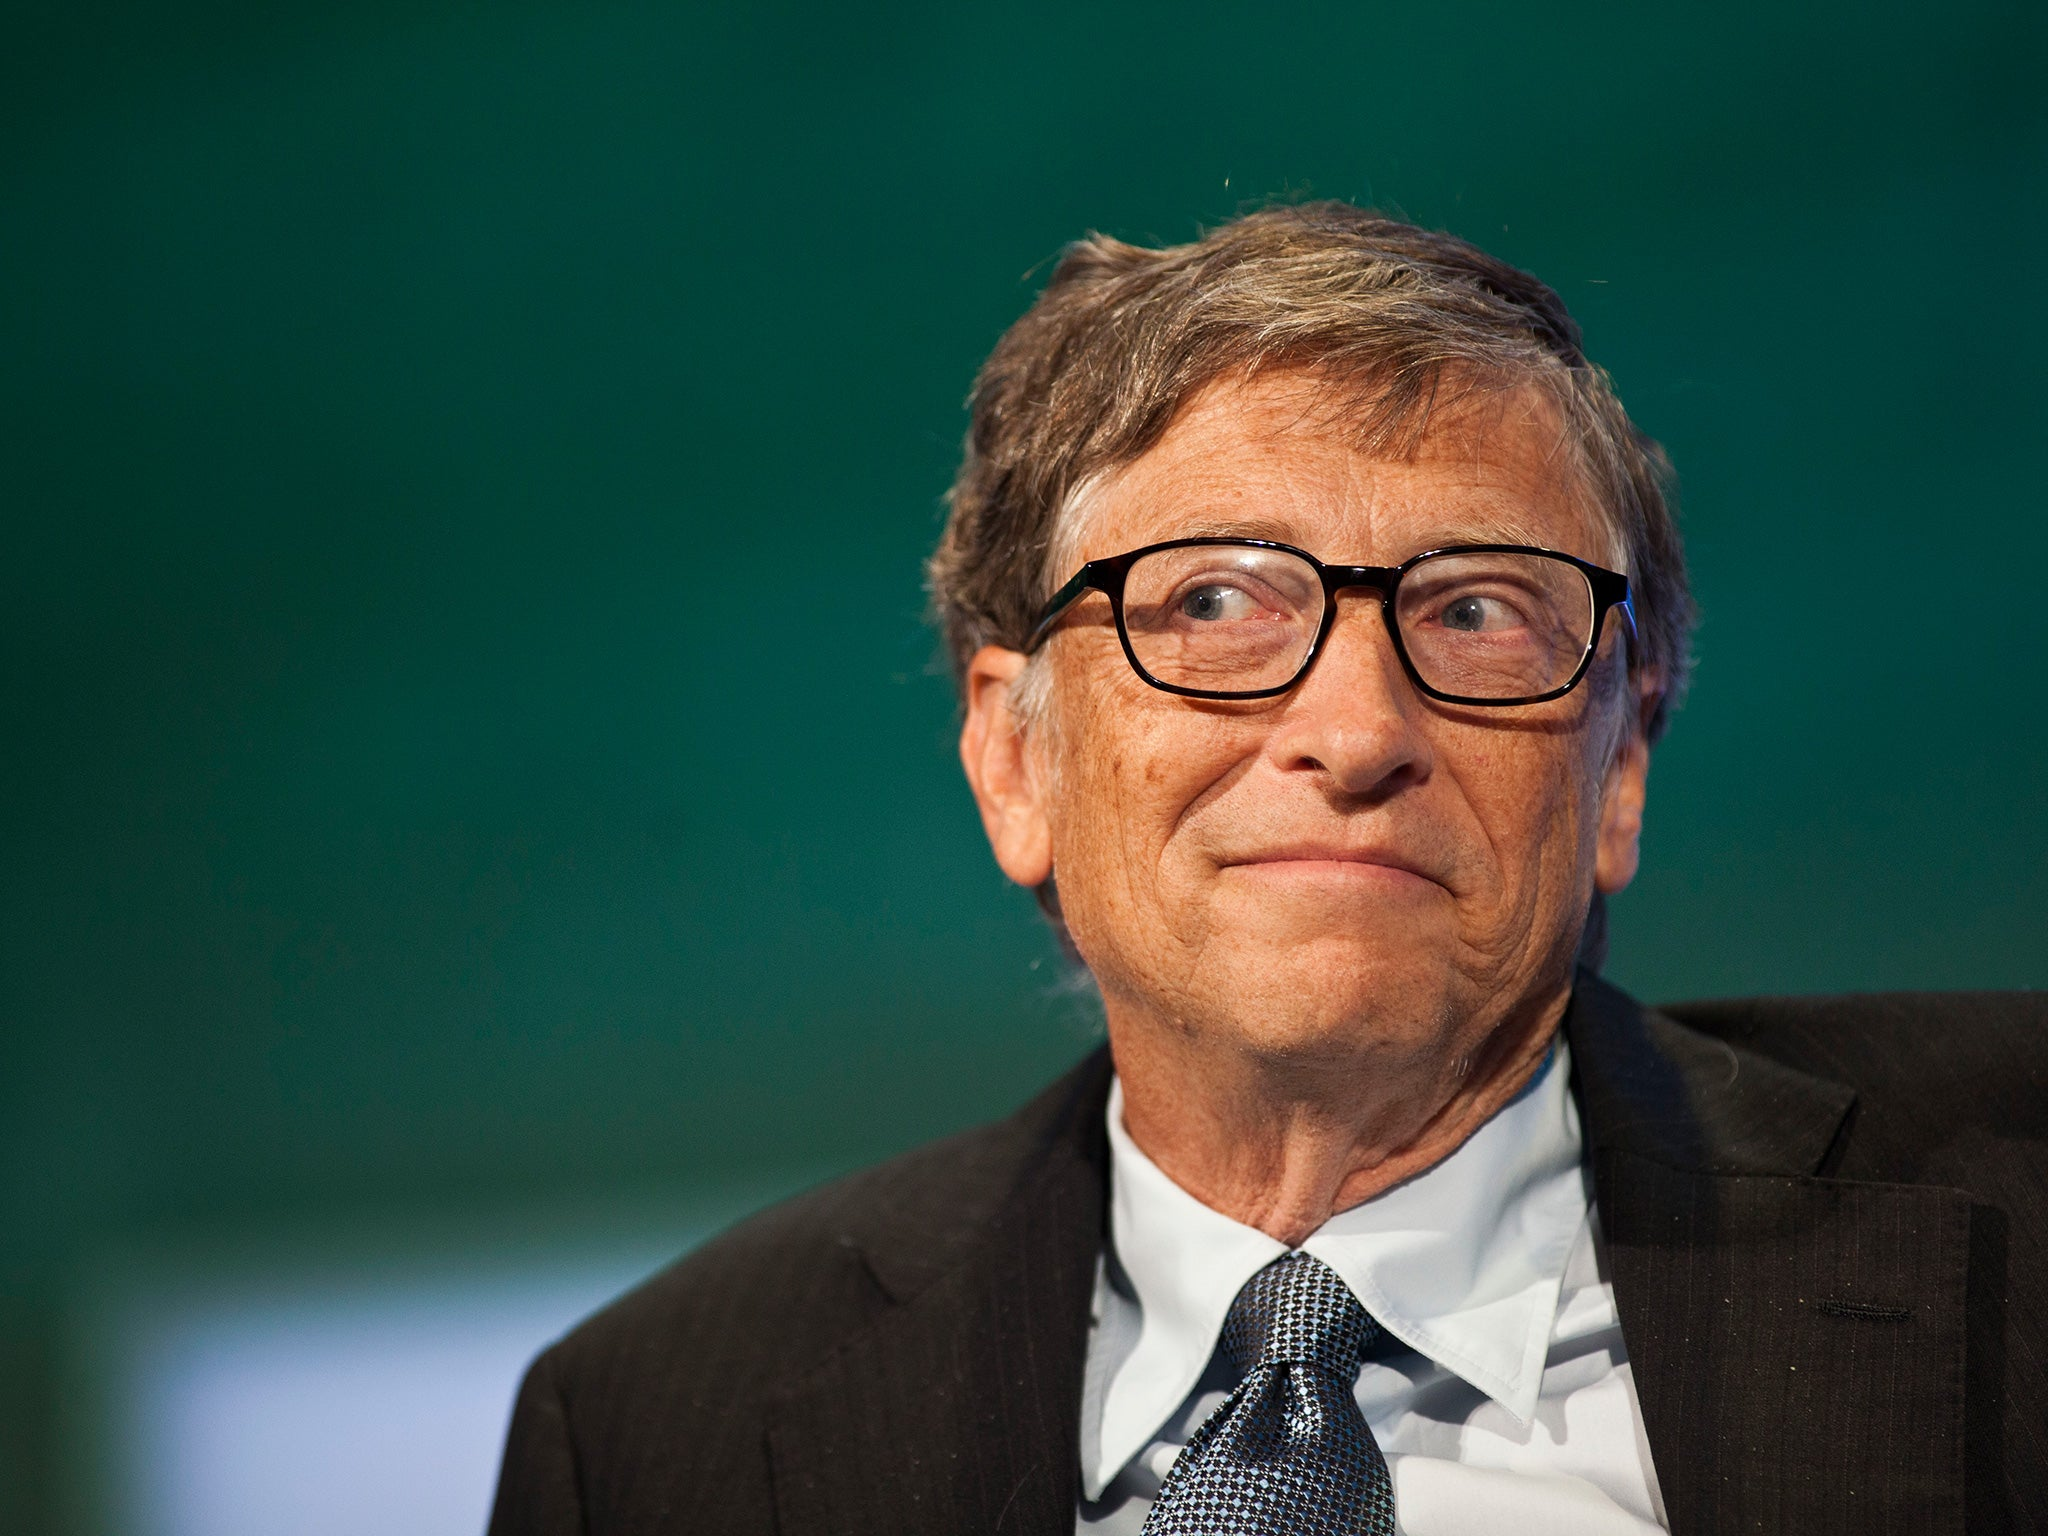 Power List 2015: The 50 most influential people in the world | The